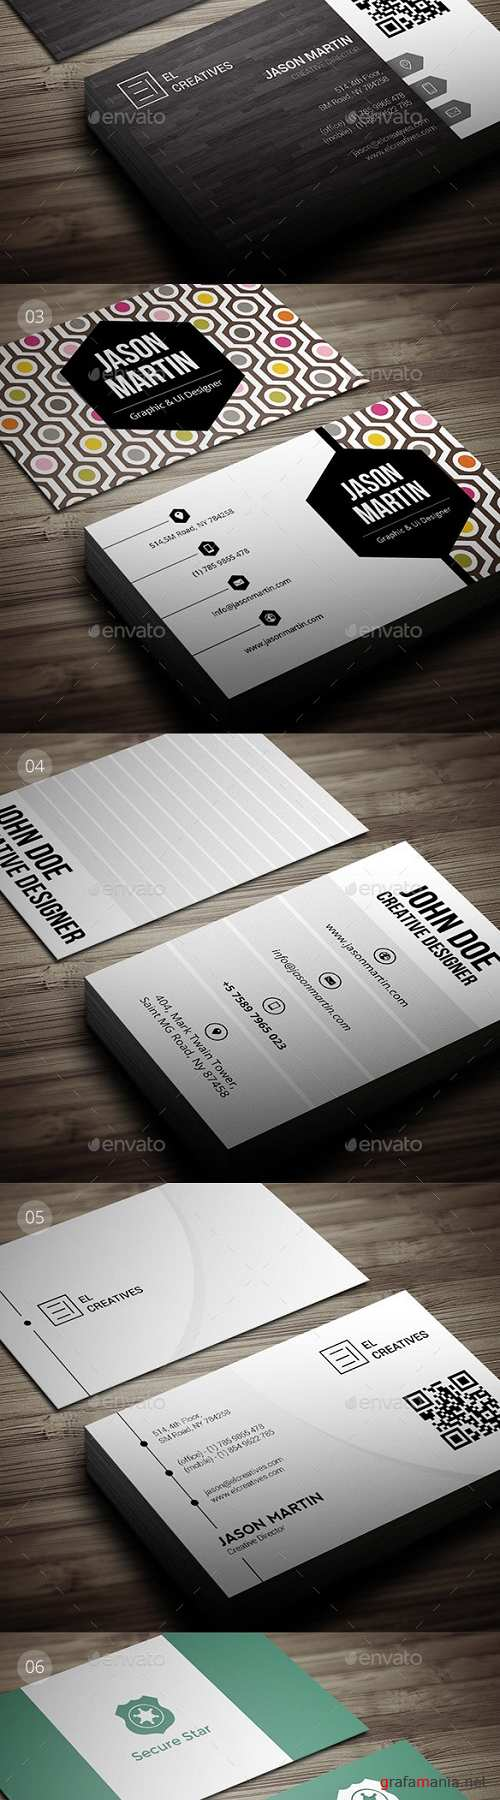 Bundle - Pro 6 in 1 - Creative Business Cards - B48 20602468